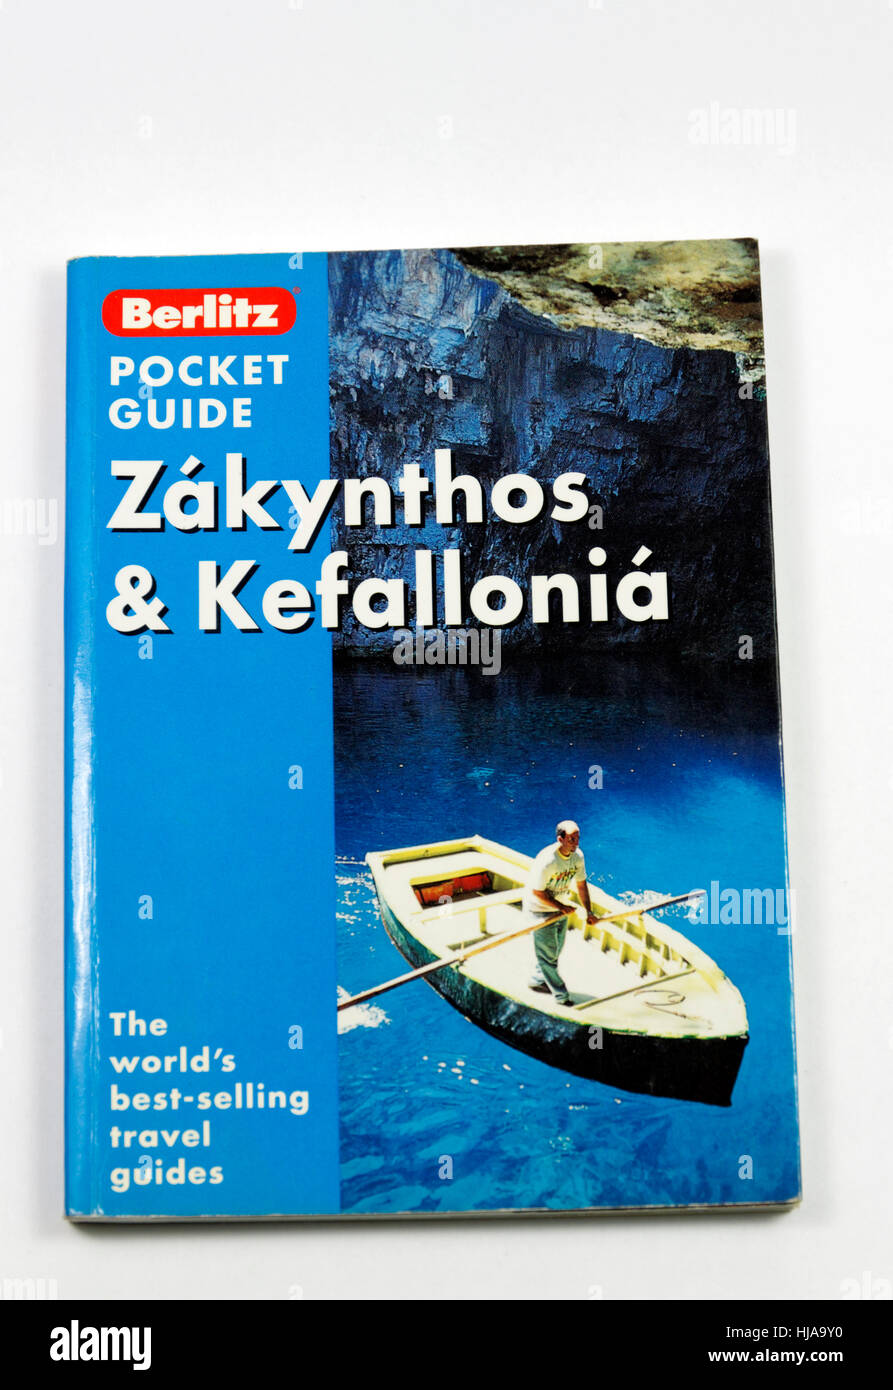 Travel guide book to Zakinthos and Kefallonia, Ionian Islands, Greece. - Stock Image